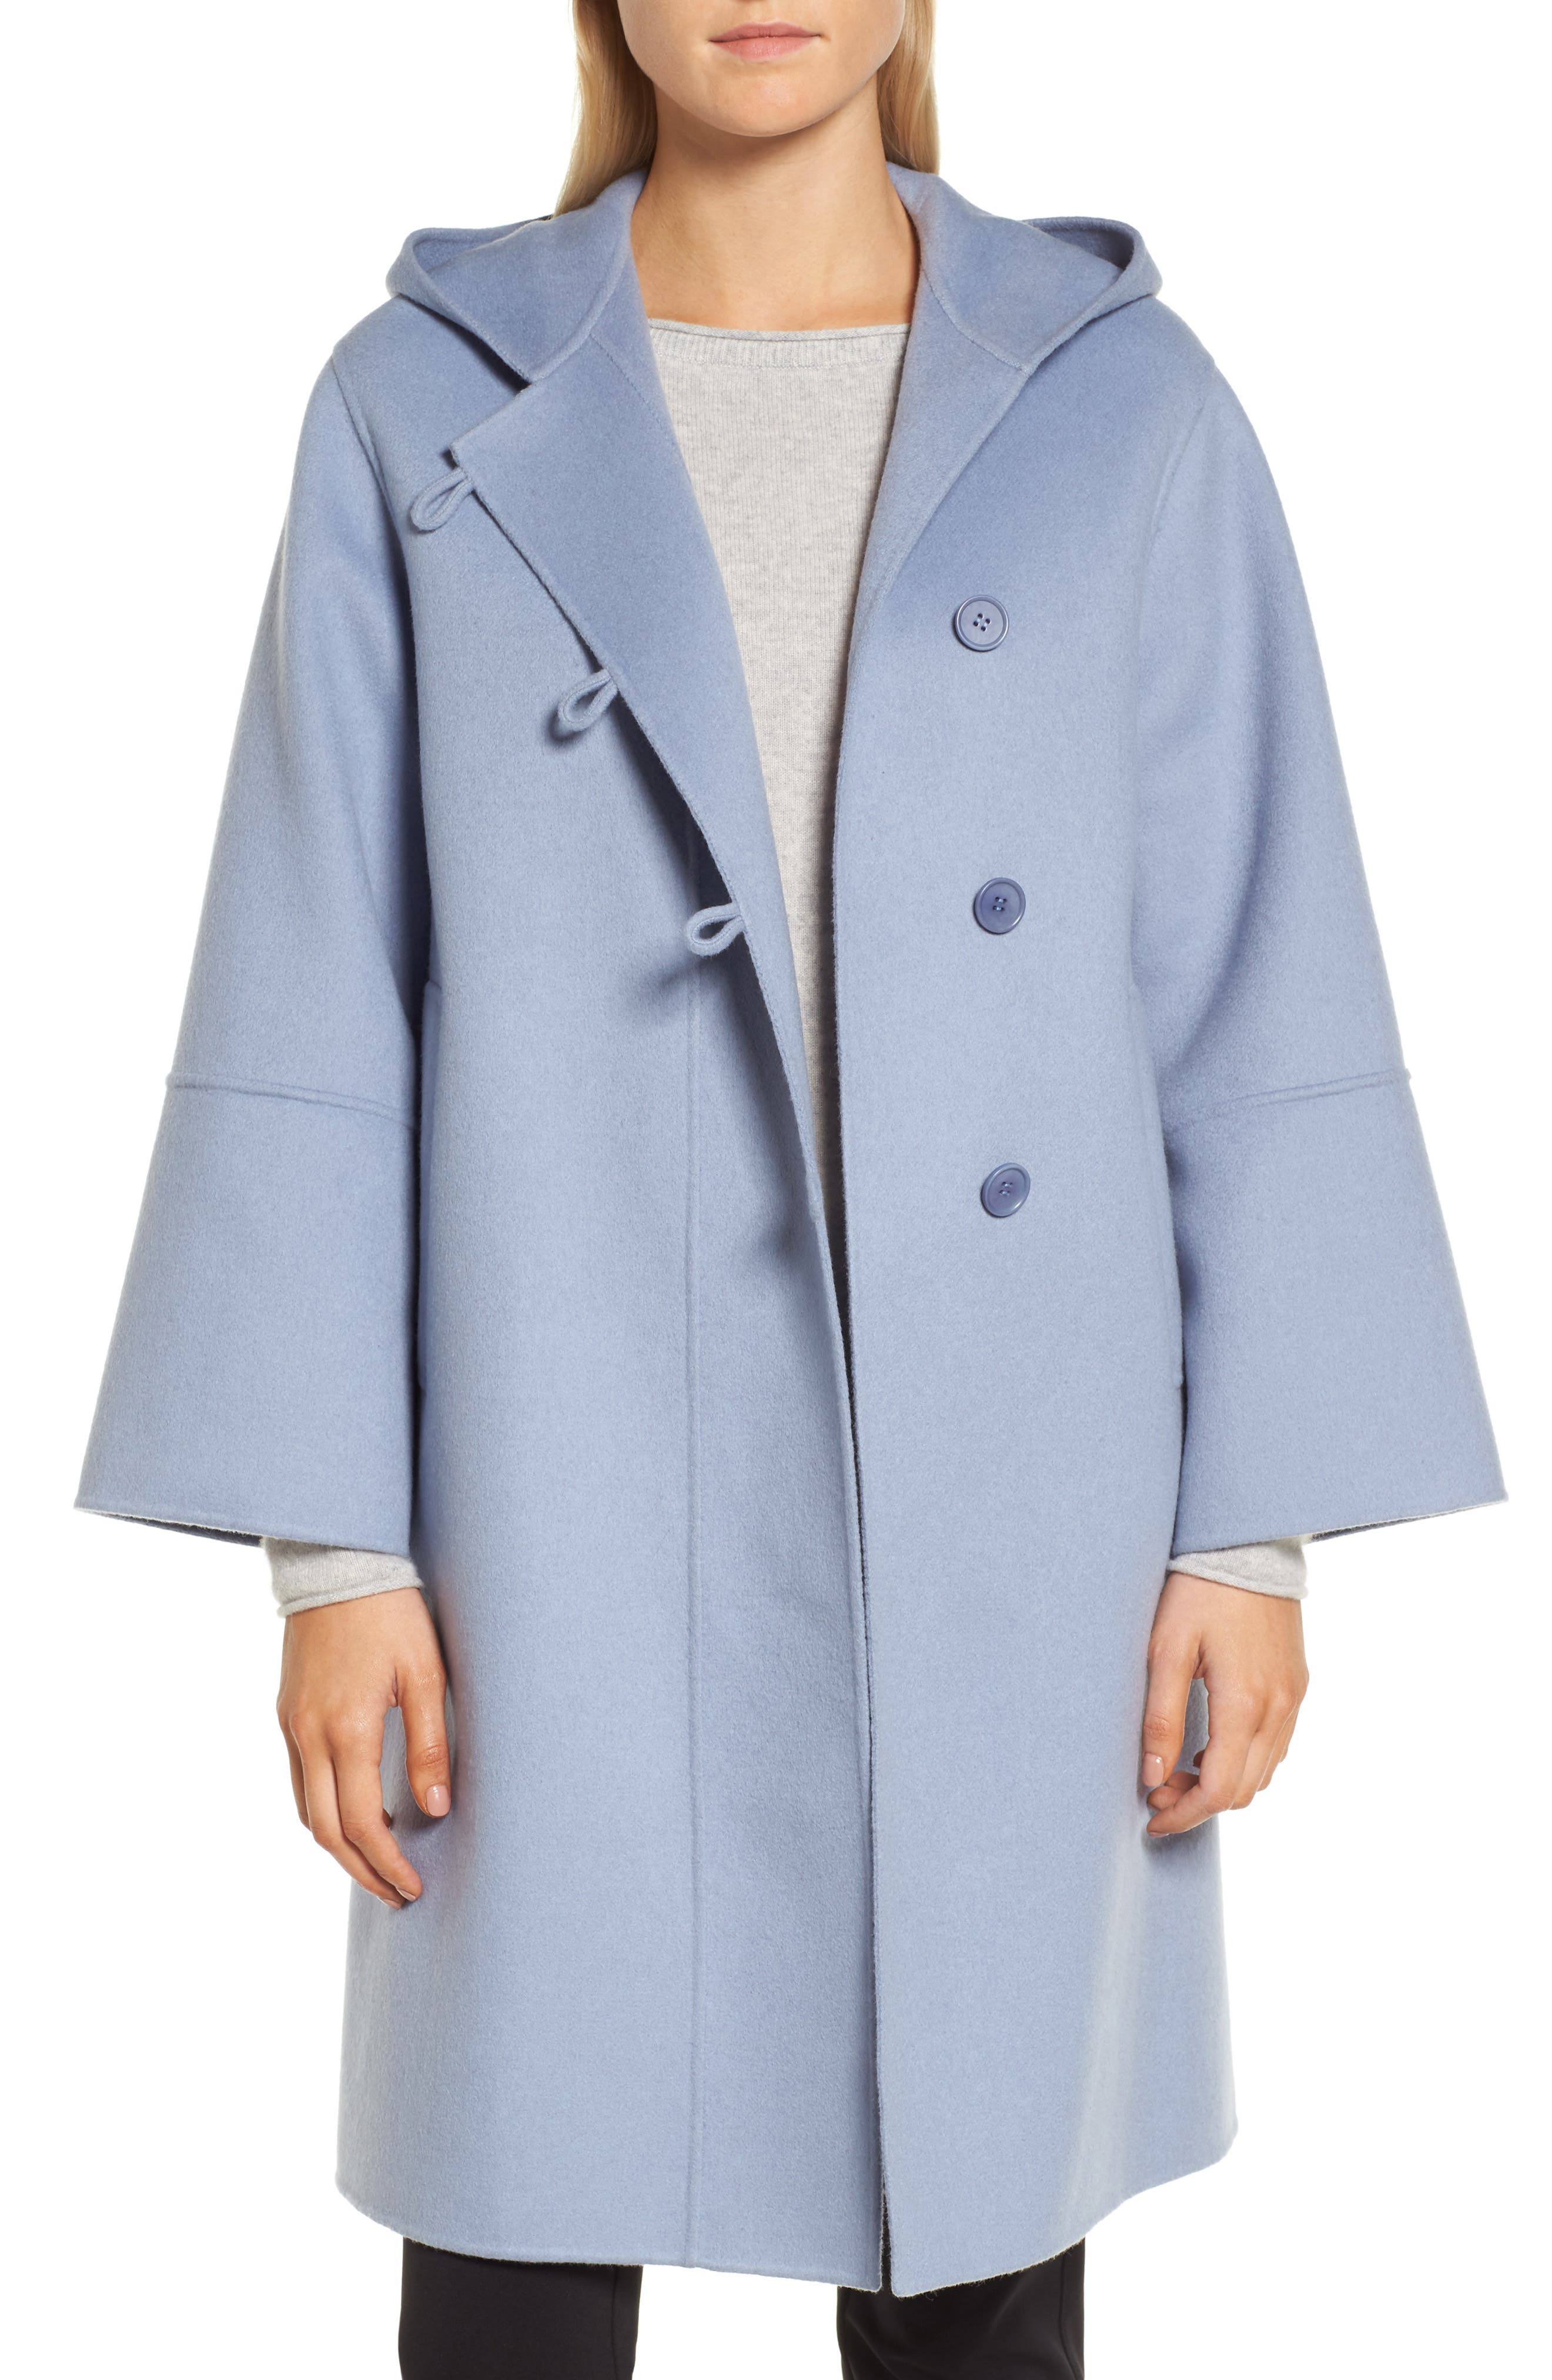 Hooded Wool & Cashmere Coat,                             Main thumbnail 1, color,                             Blue Tempest